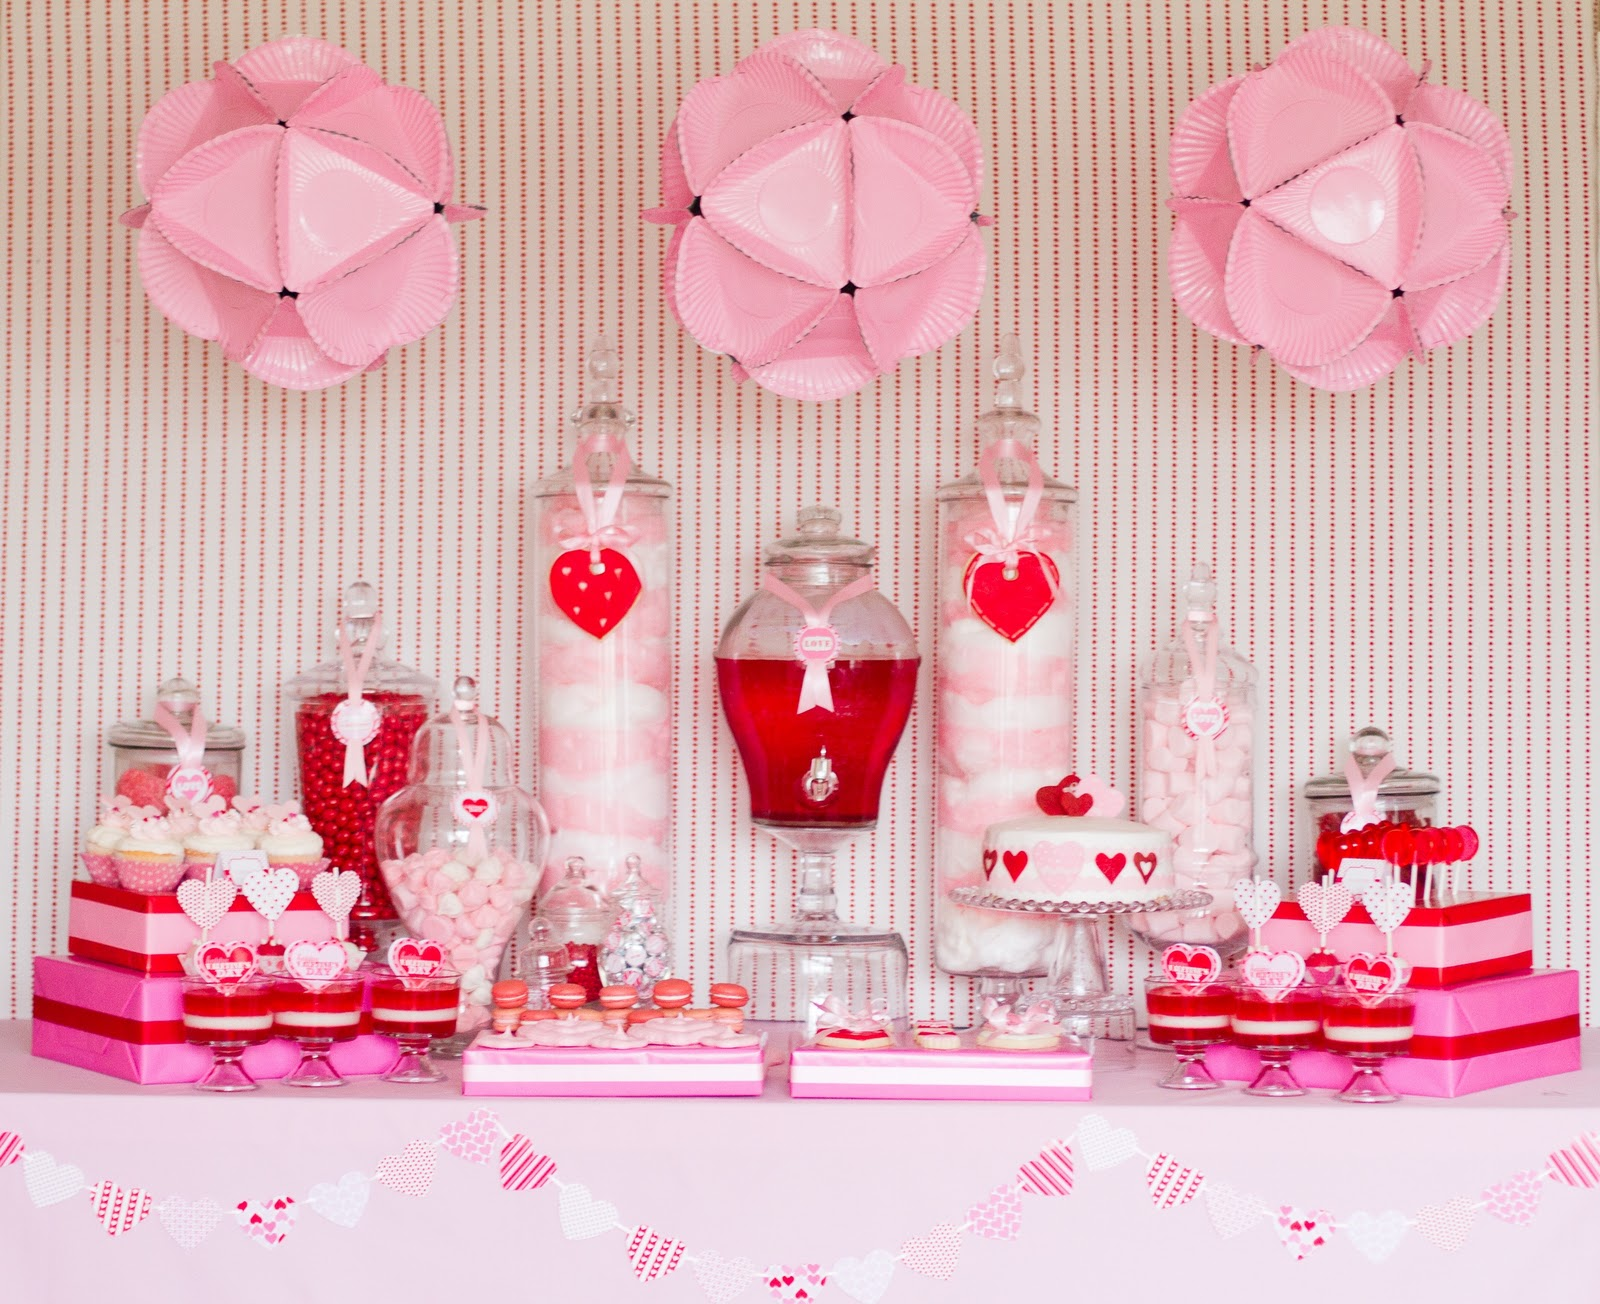 Swanky chic fete valentine 39 s day dessert tables for Table design for valentines day